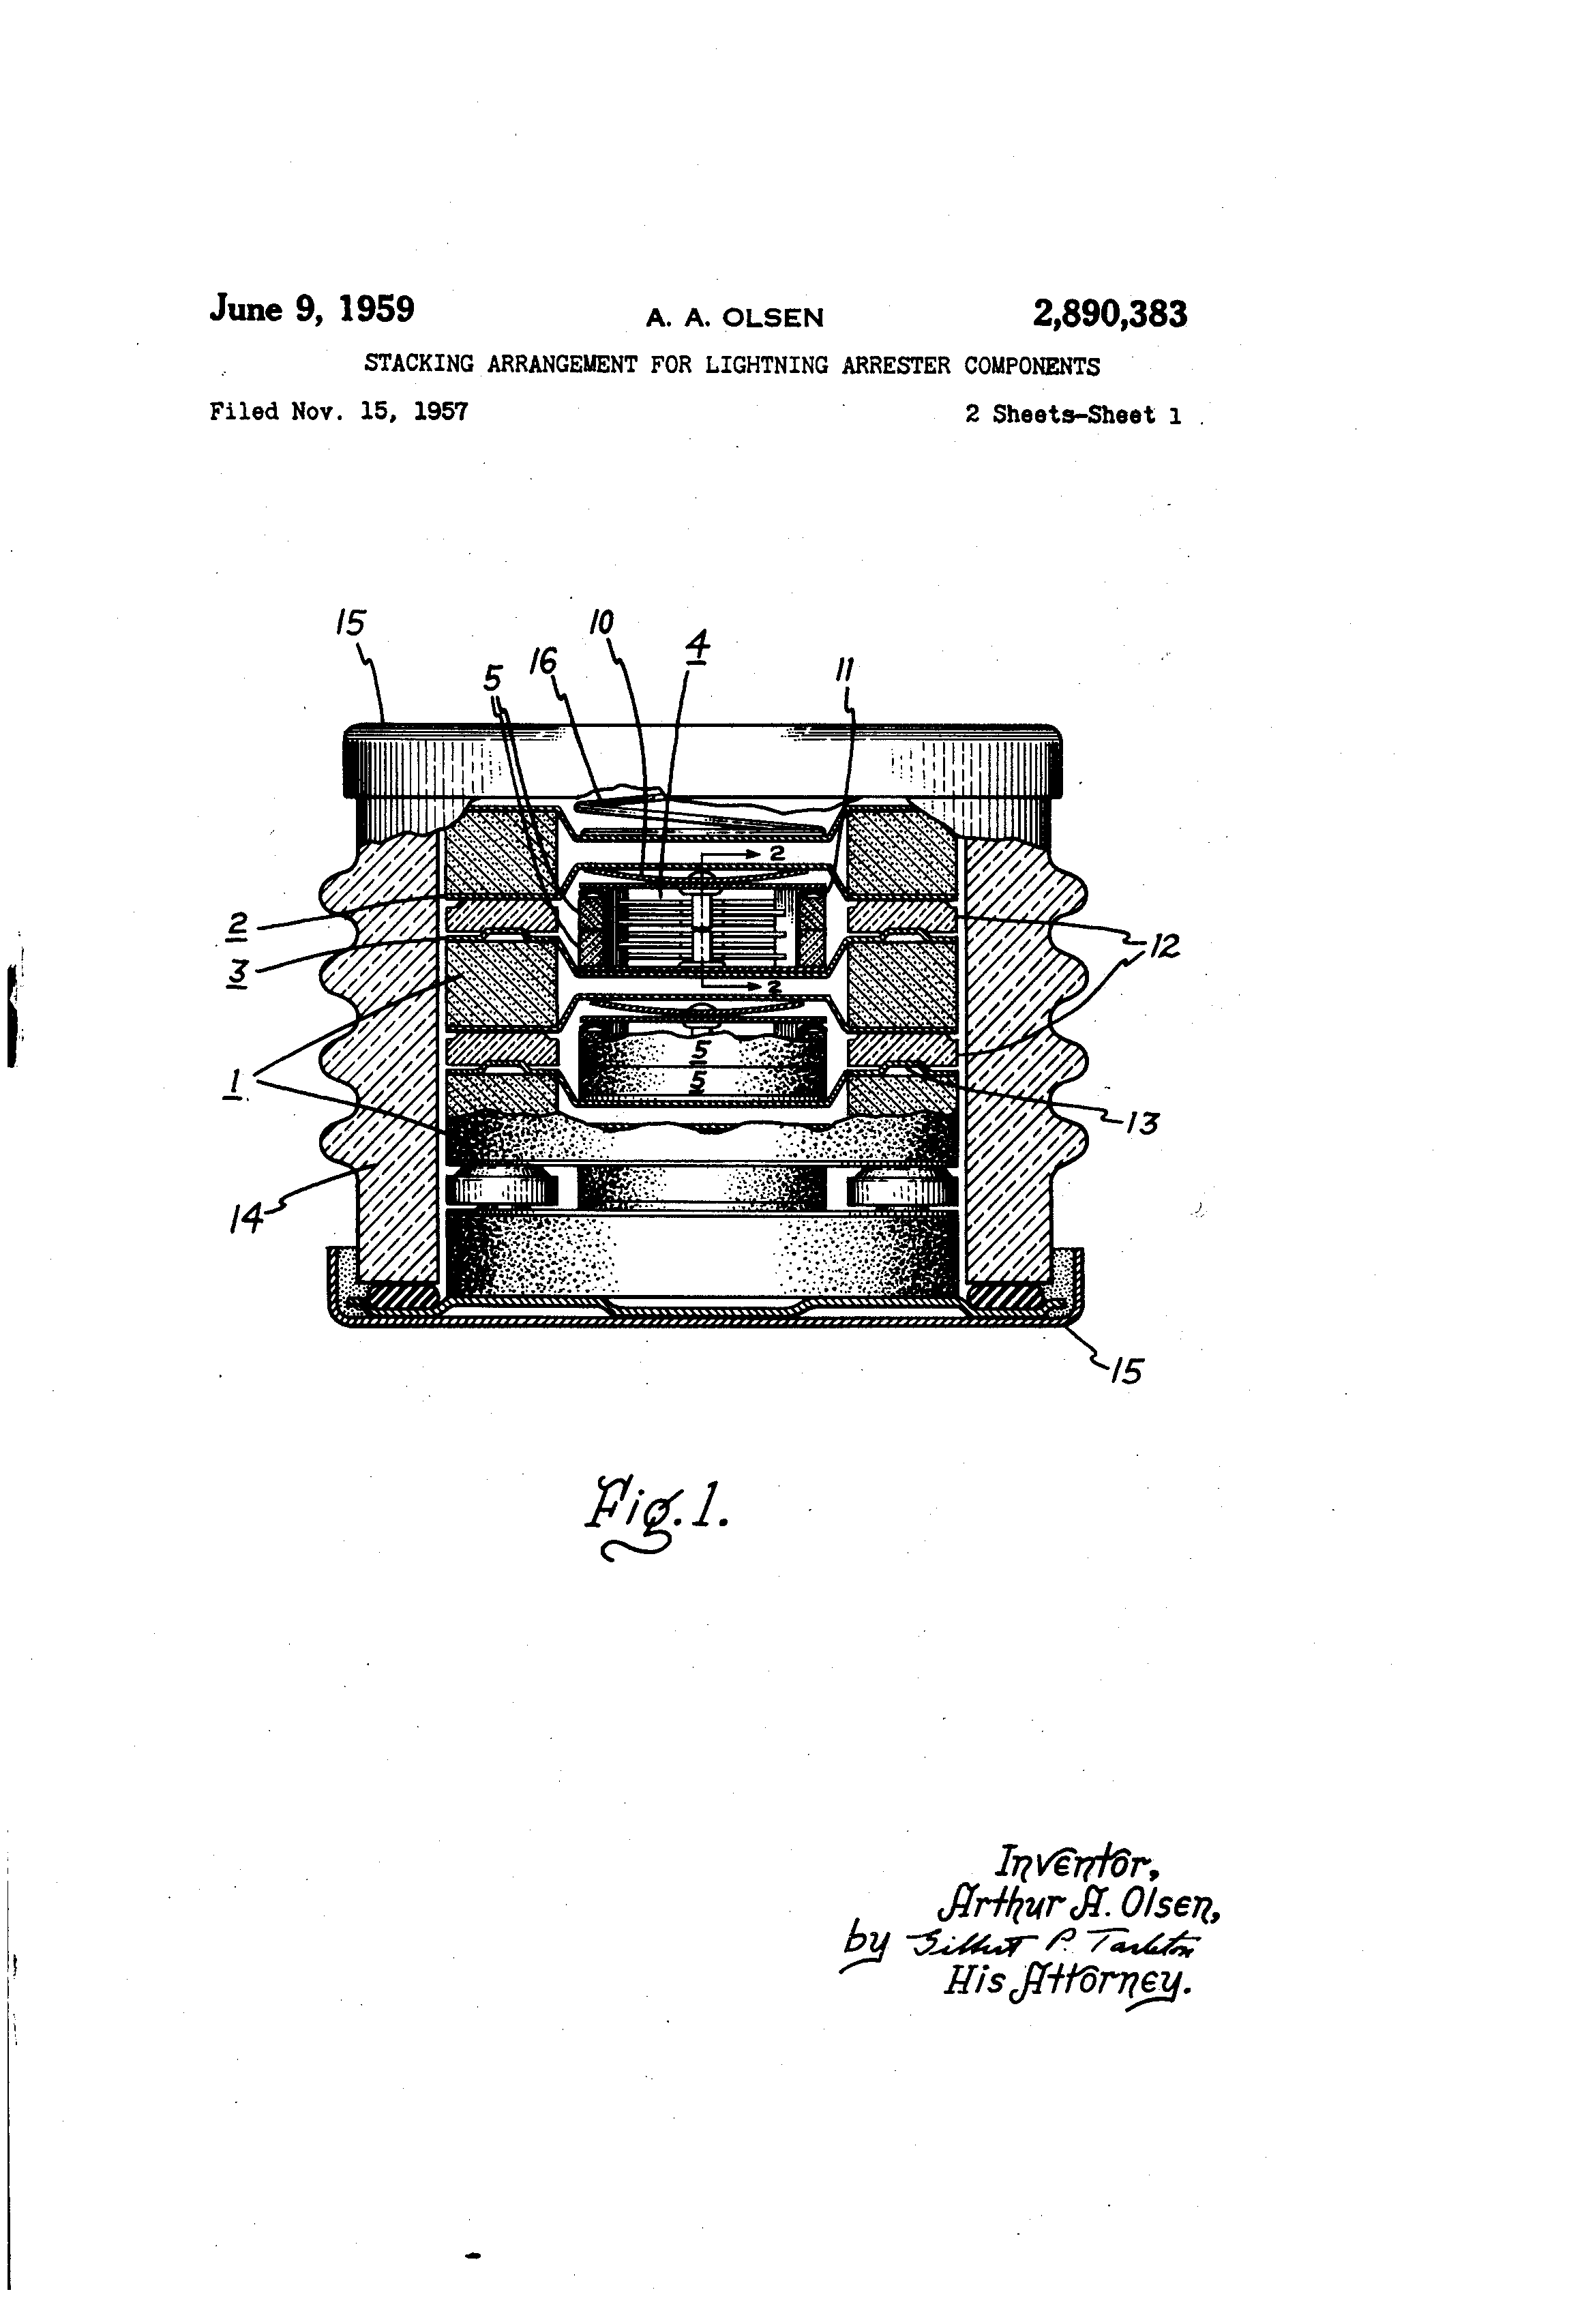 Diagram Of Lighting Arrester